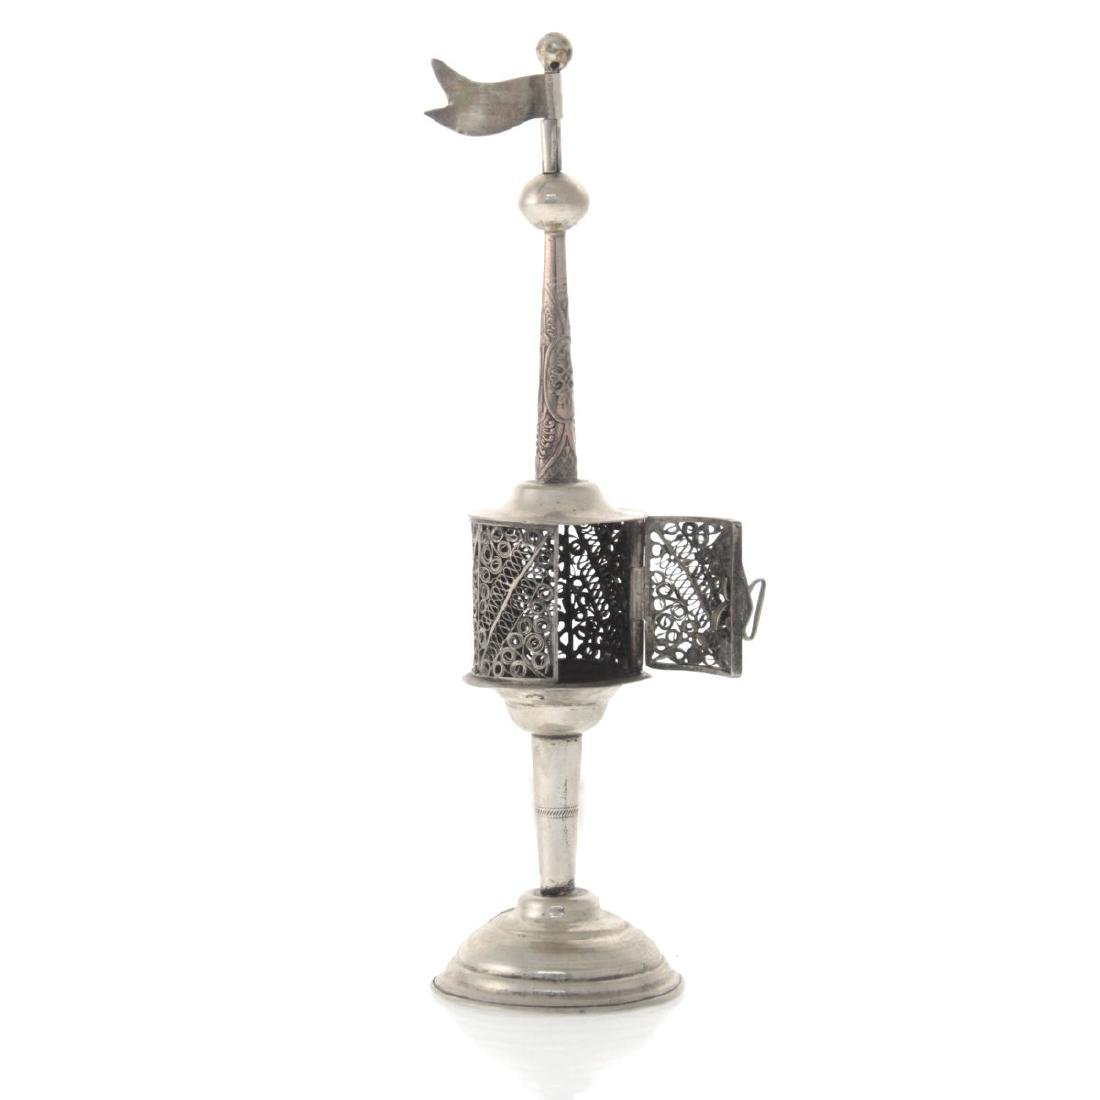 Silver and Filigree Spice Tower Box Besamim, Probably - 3